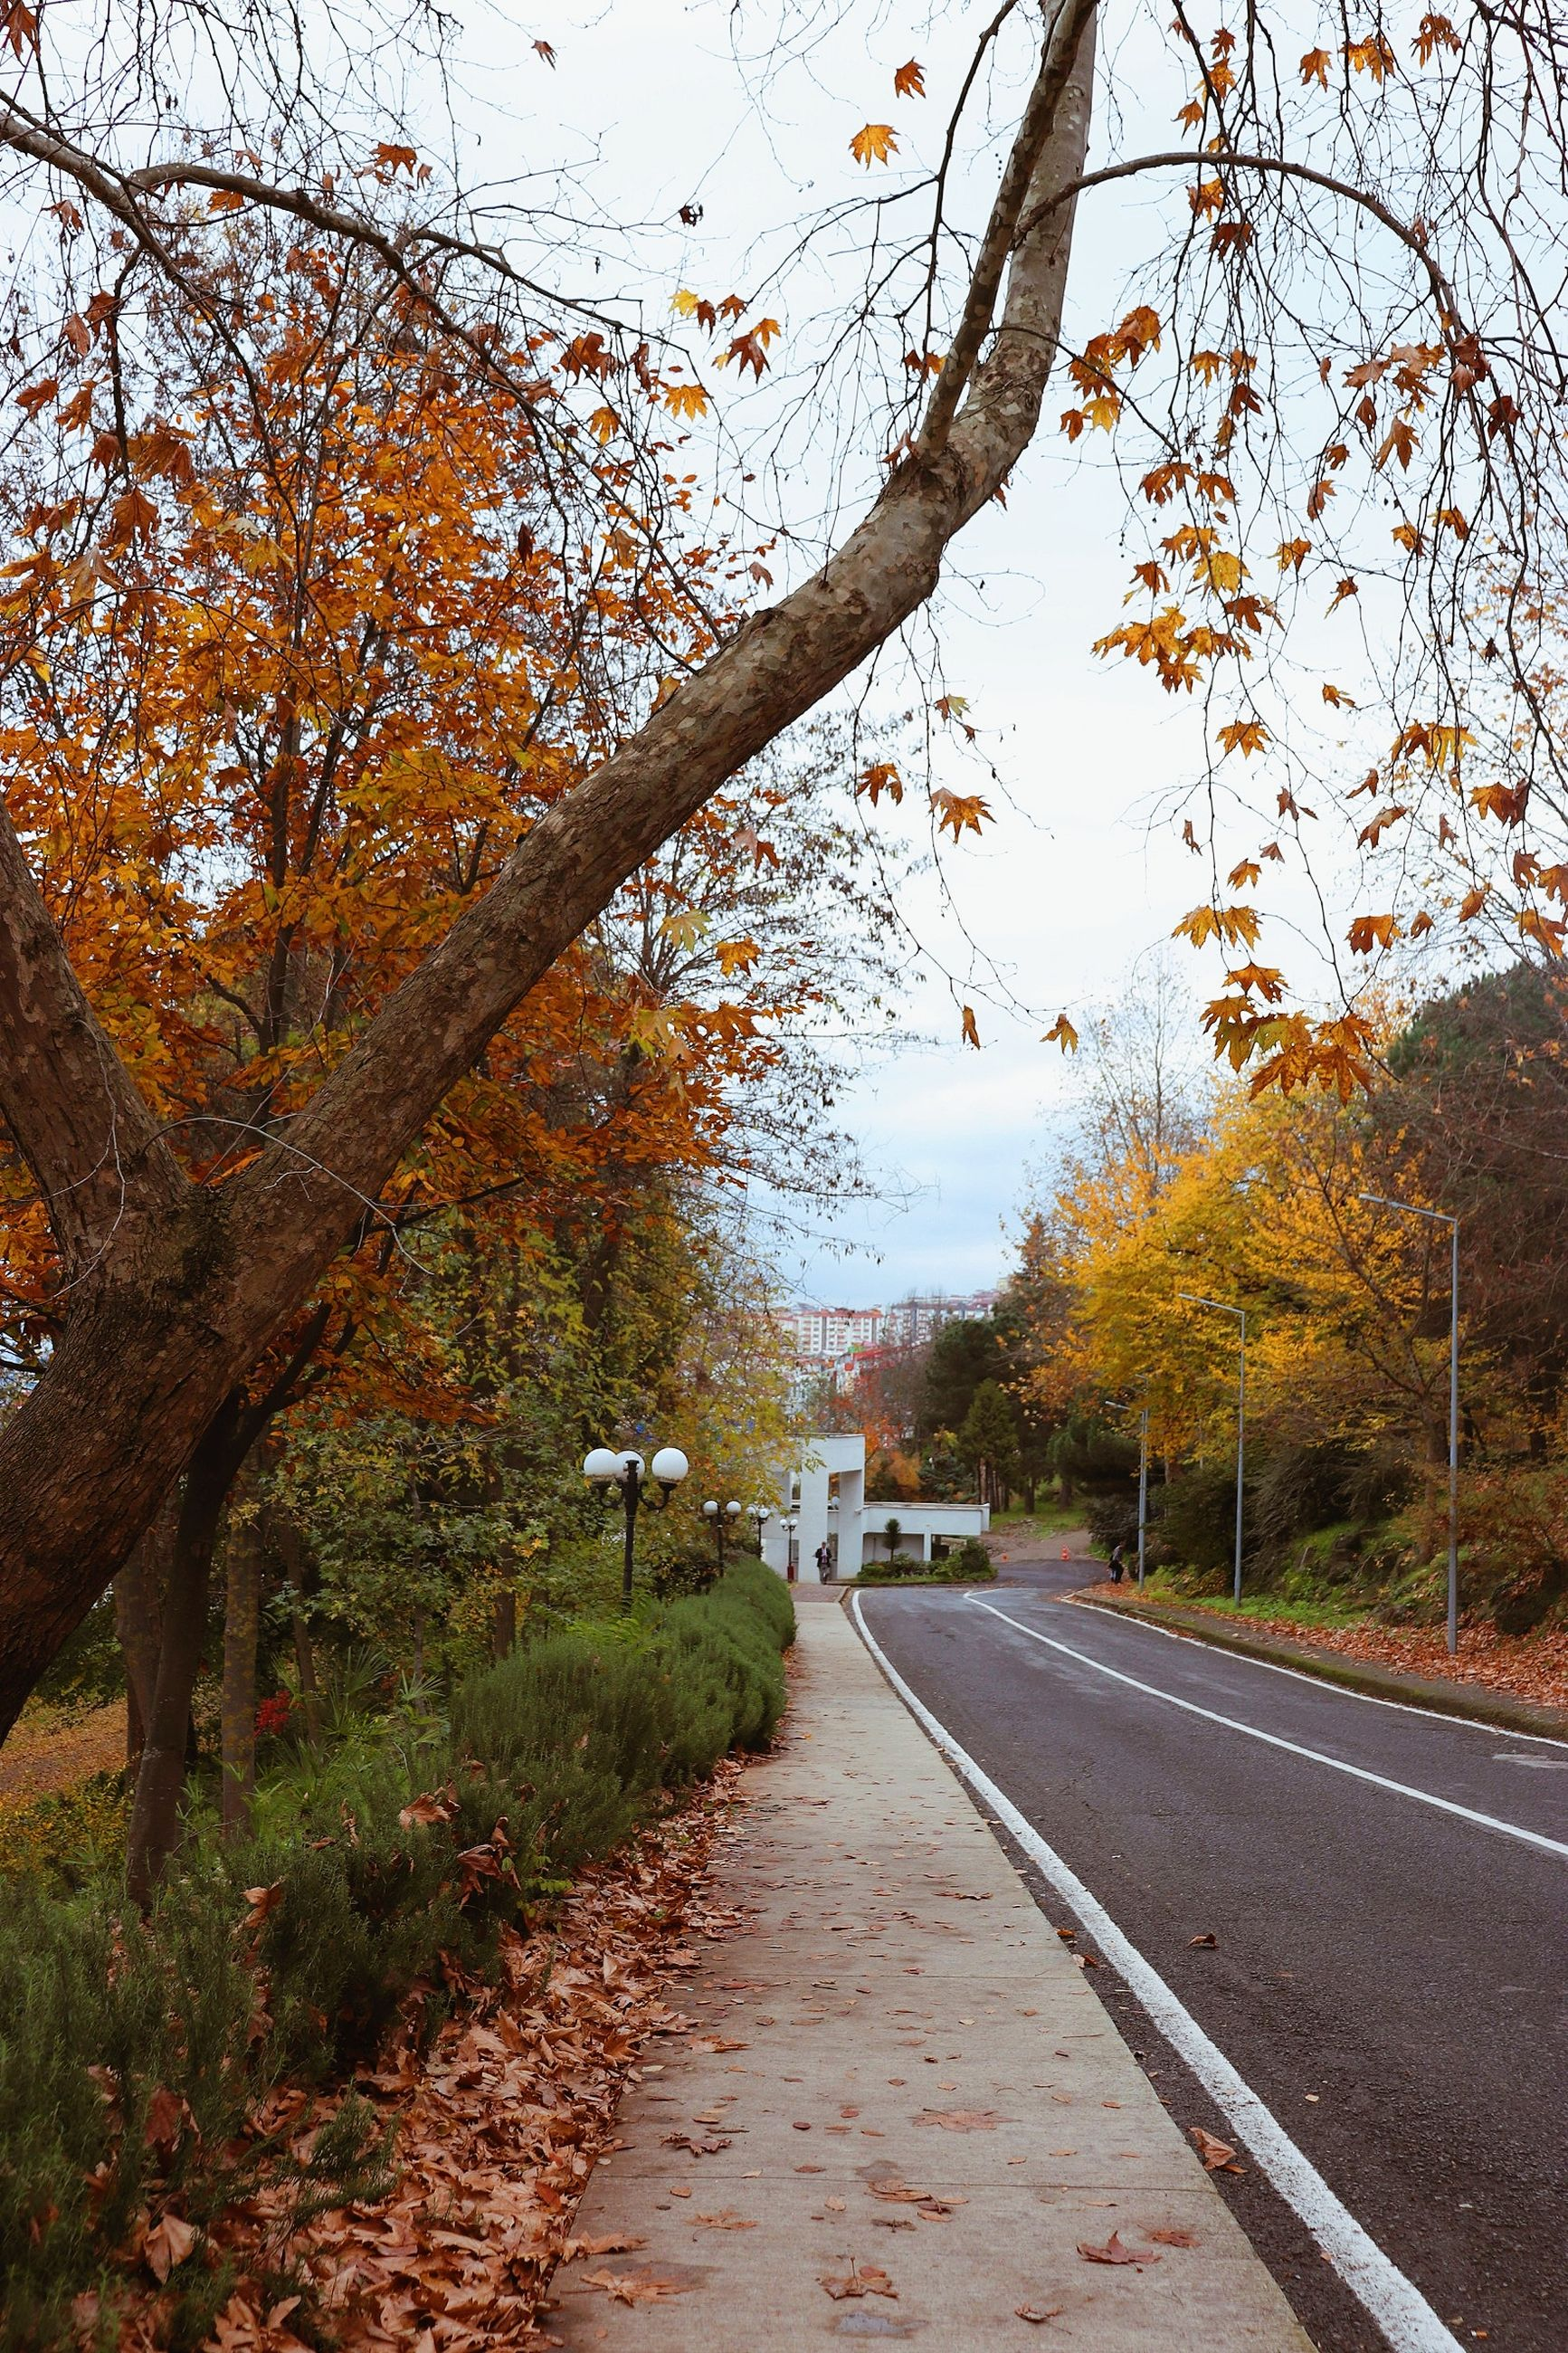 tree, autumn, plant, change, the way forward, direction, nature, transportation, no people, beauty in nature, growth, branch, road, day, plant part, leaf, orange color, diminishing perspective, outdoors, sky, autumn collection, fall